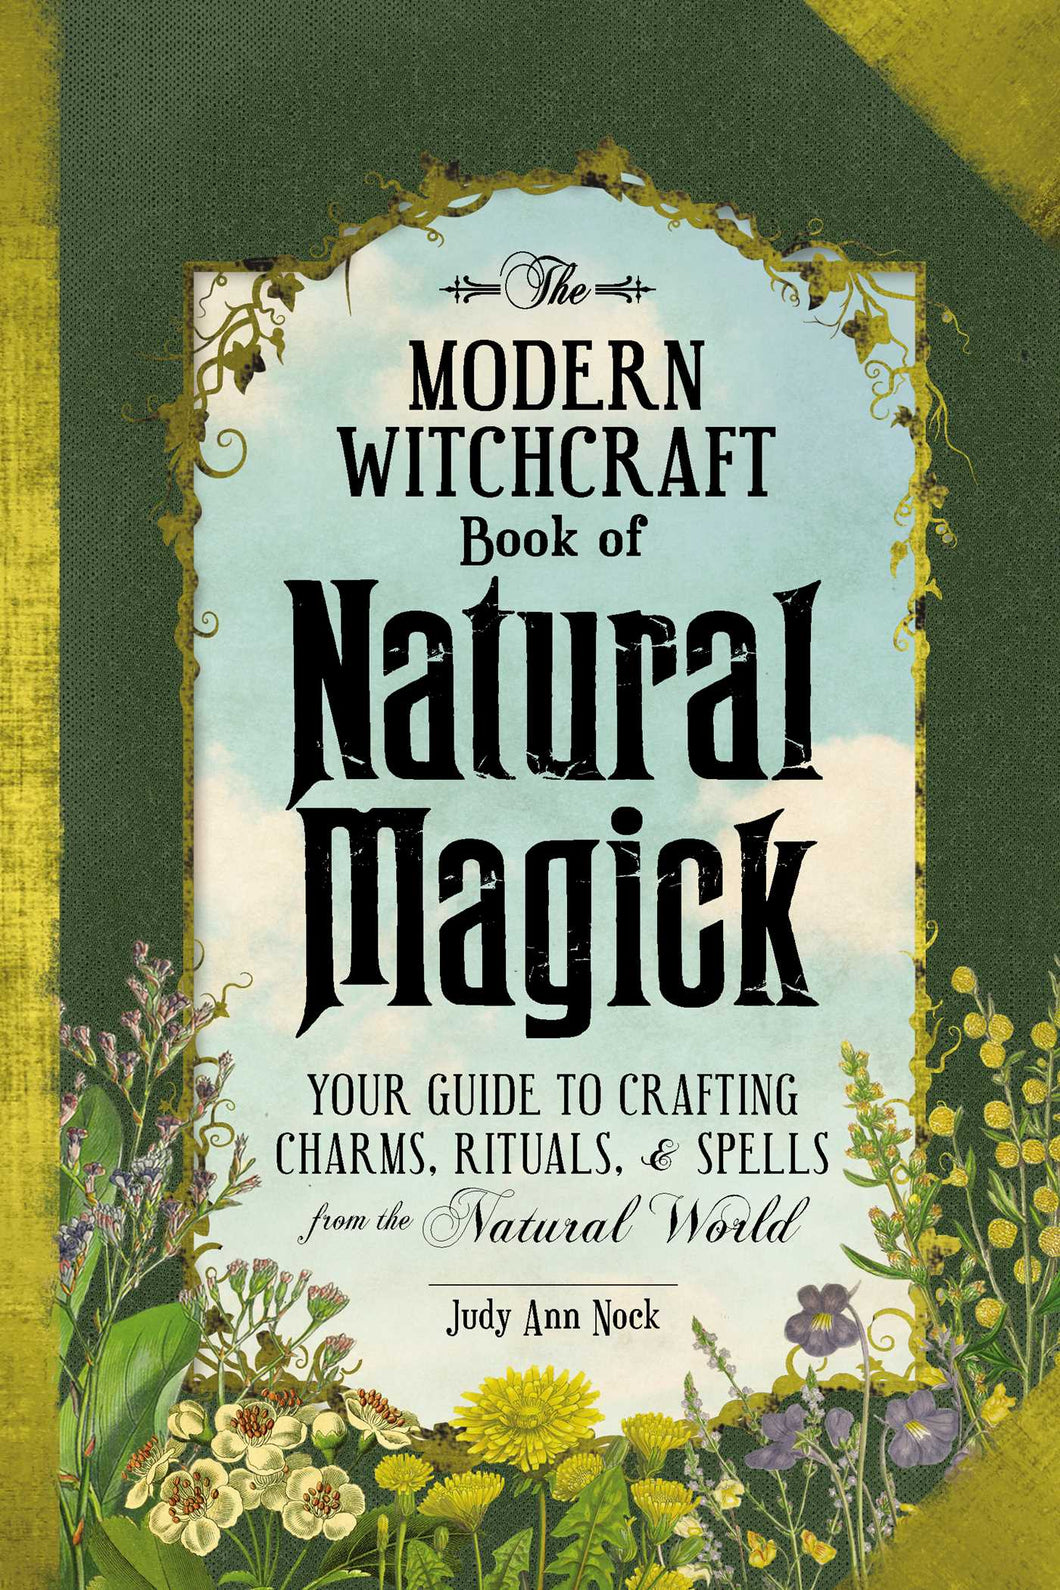 The Modern Witchcraft Book of Natural Magick (Judy Ann Nock)